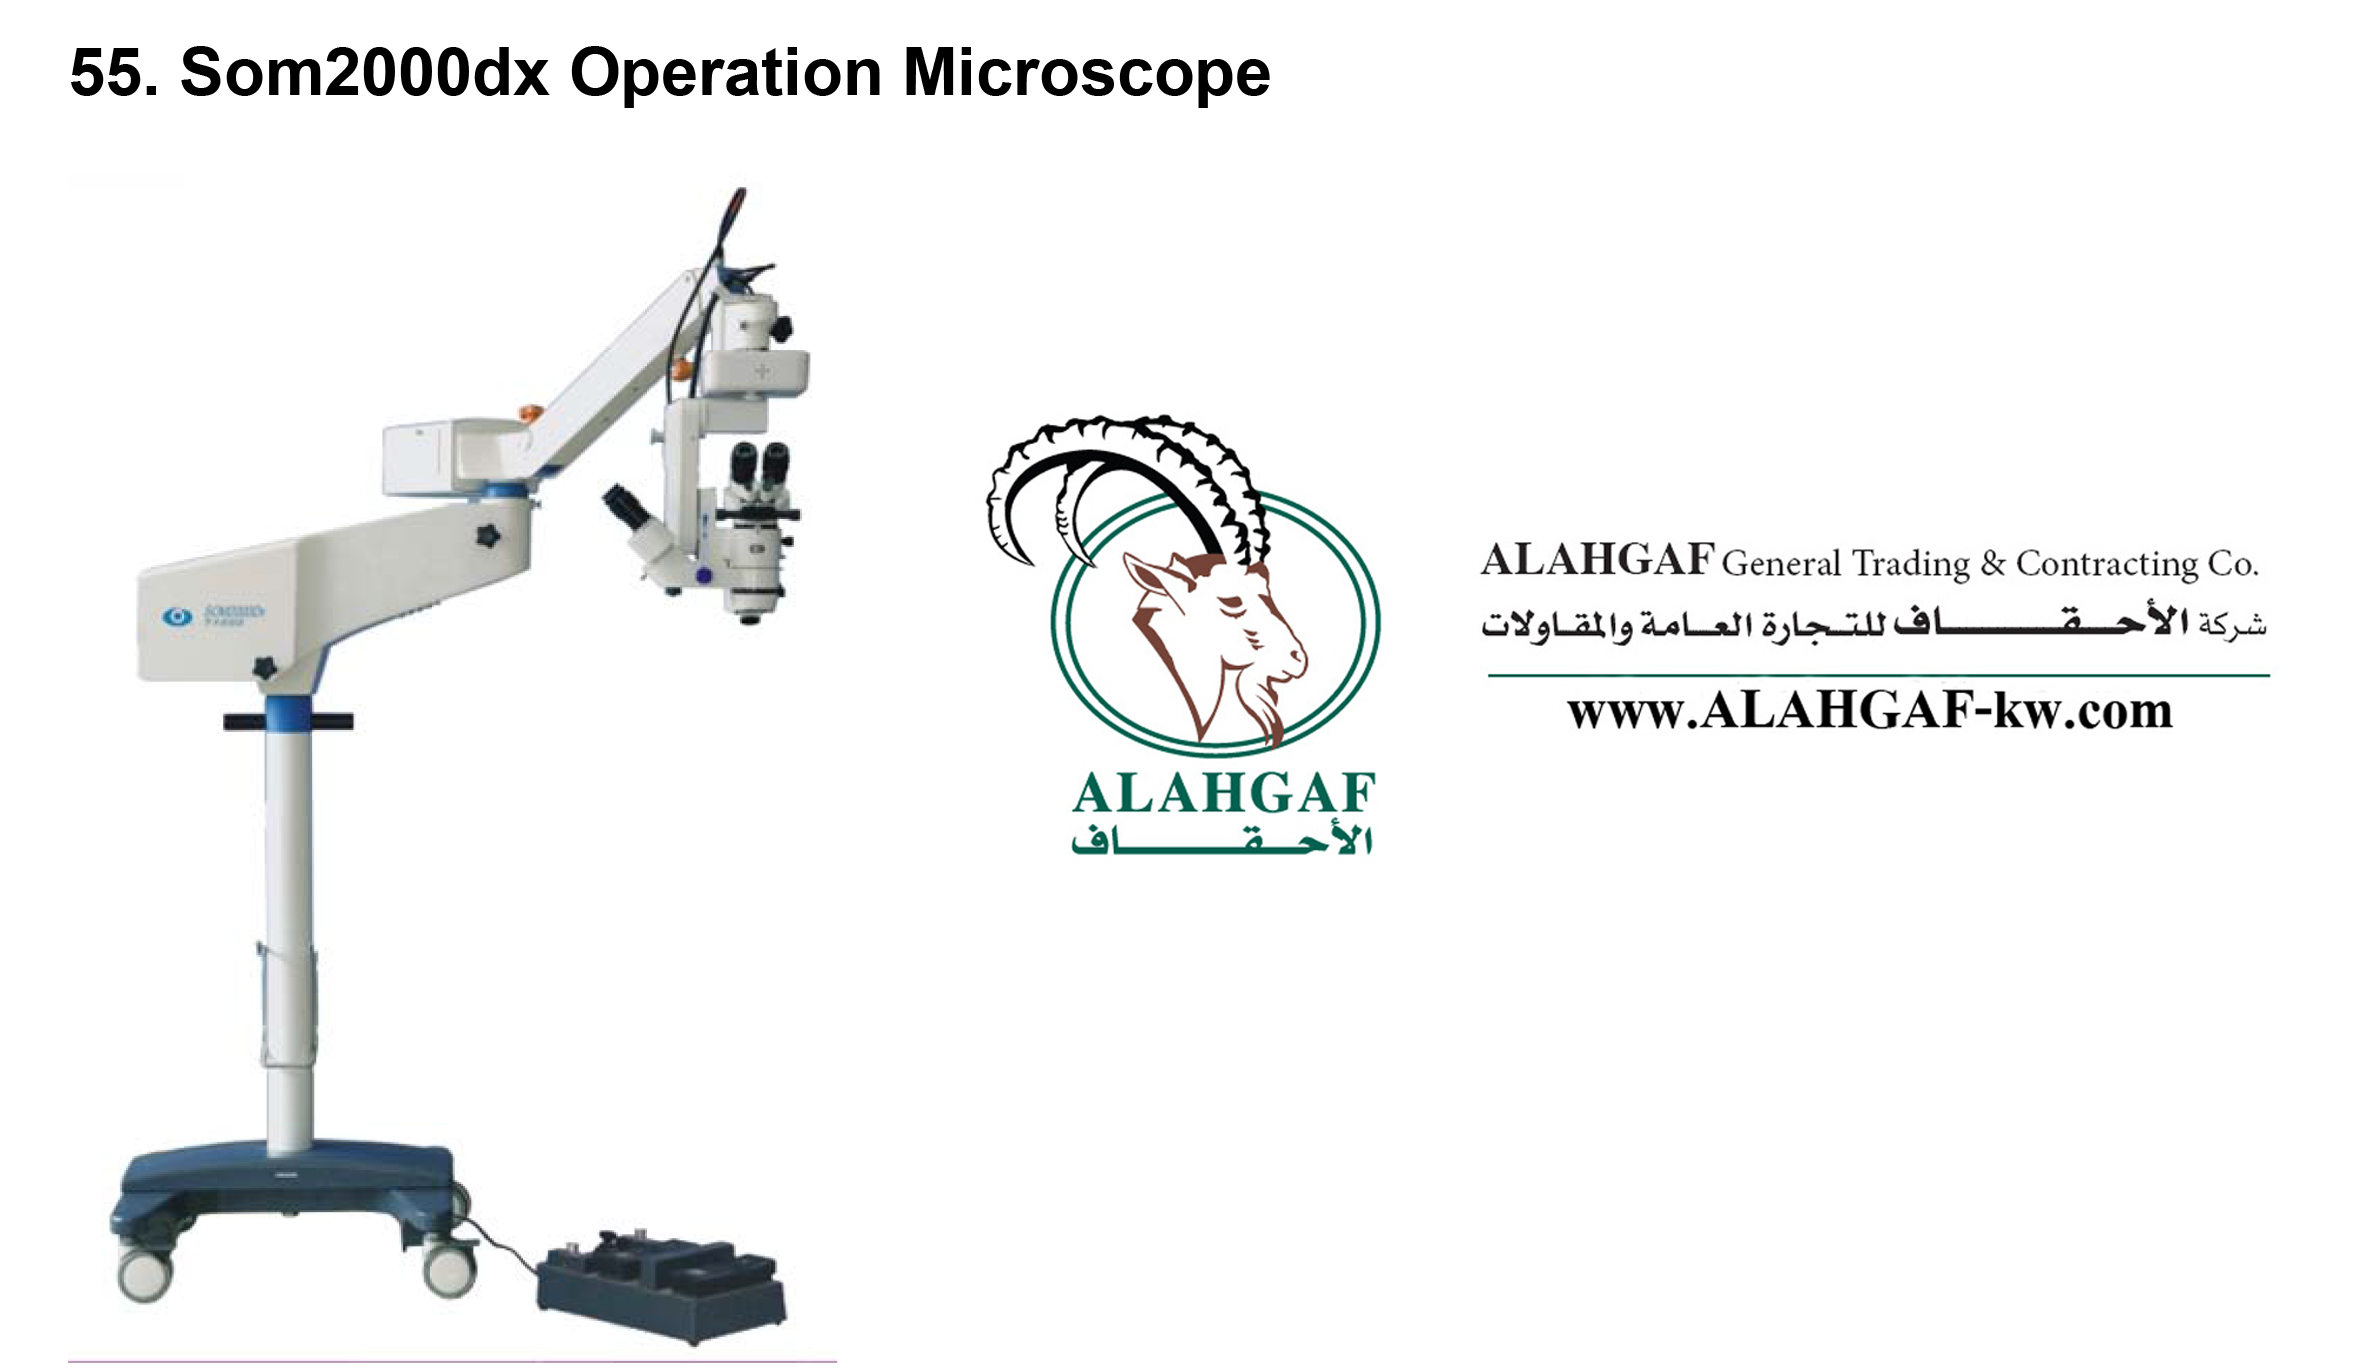 Som2000dx operation Microscopes